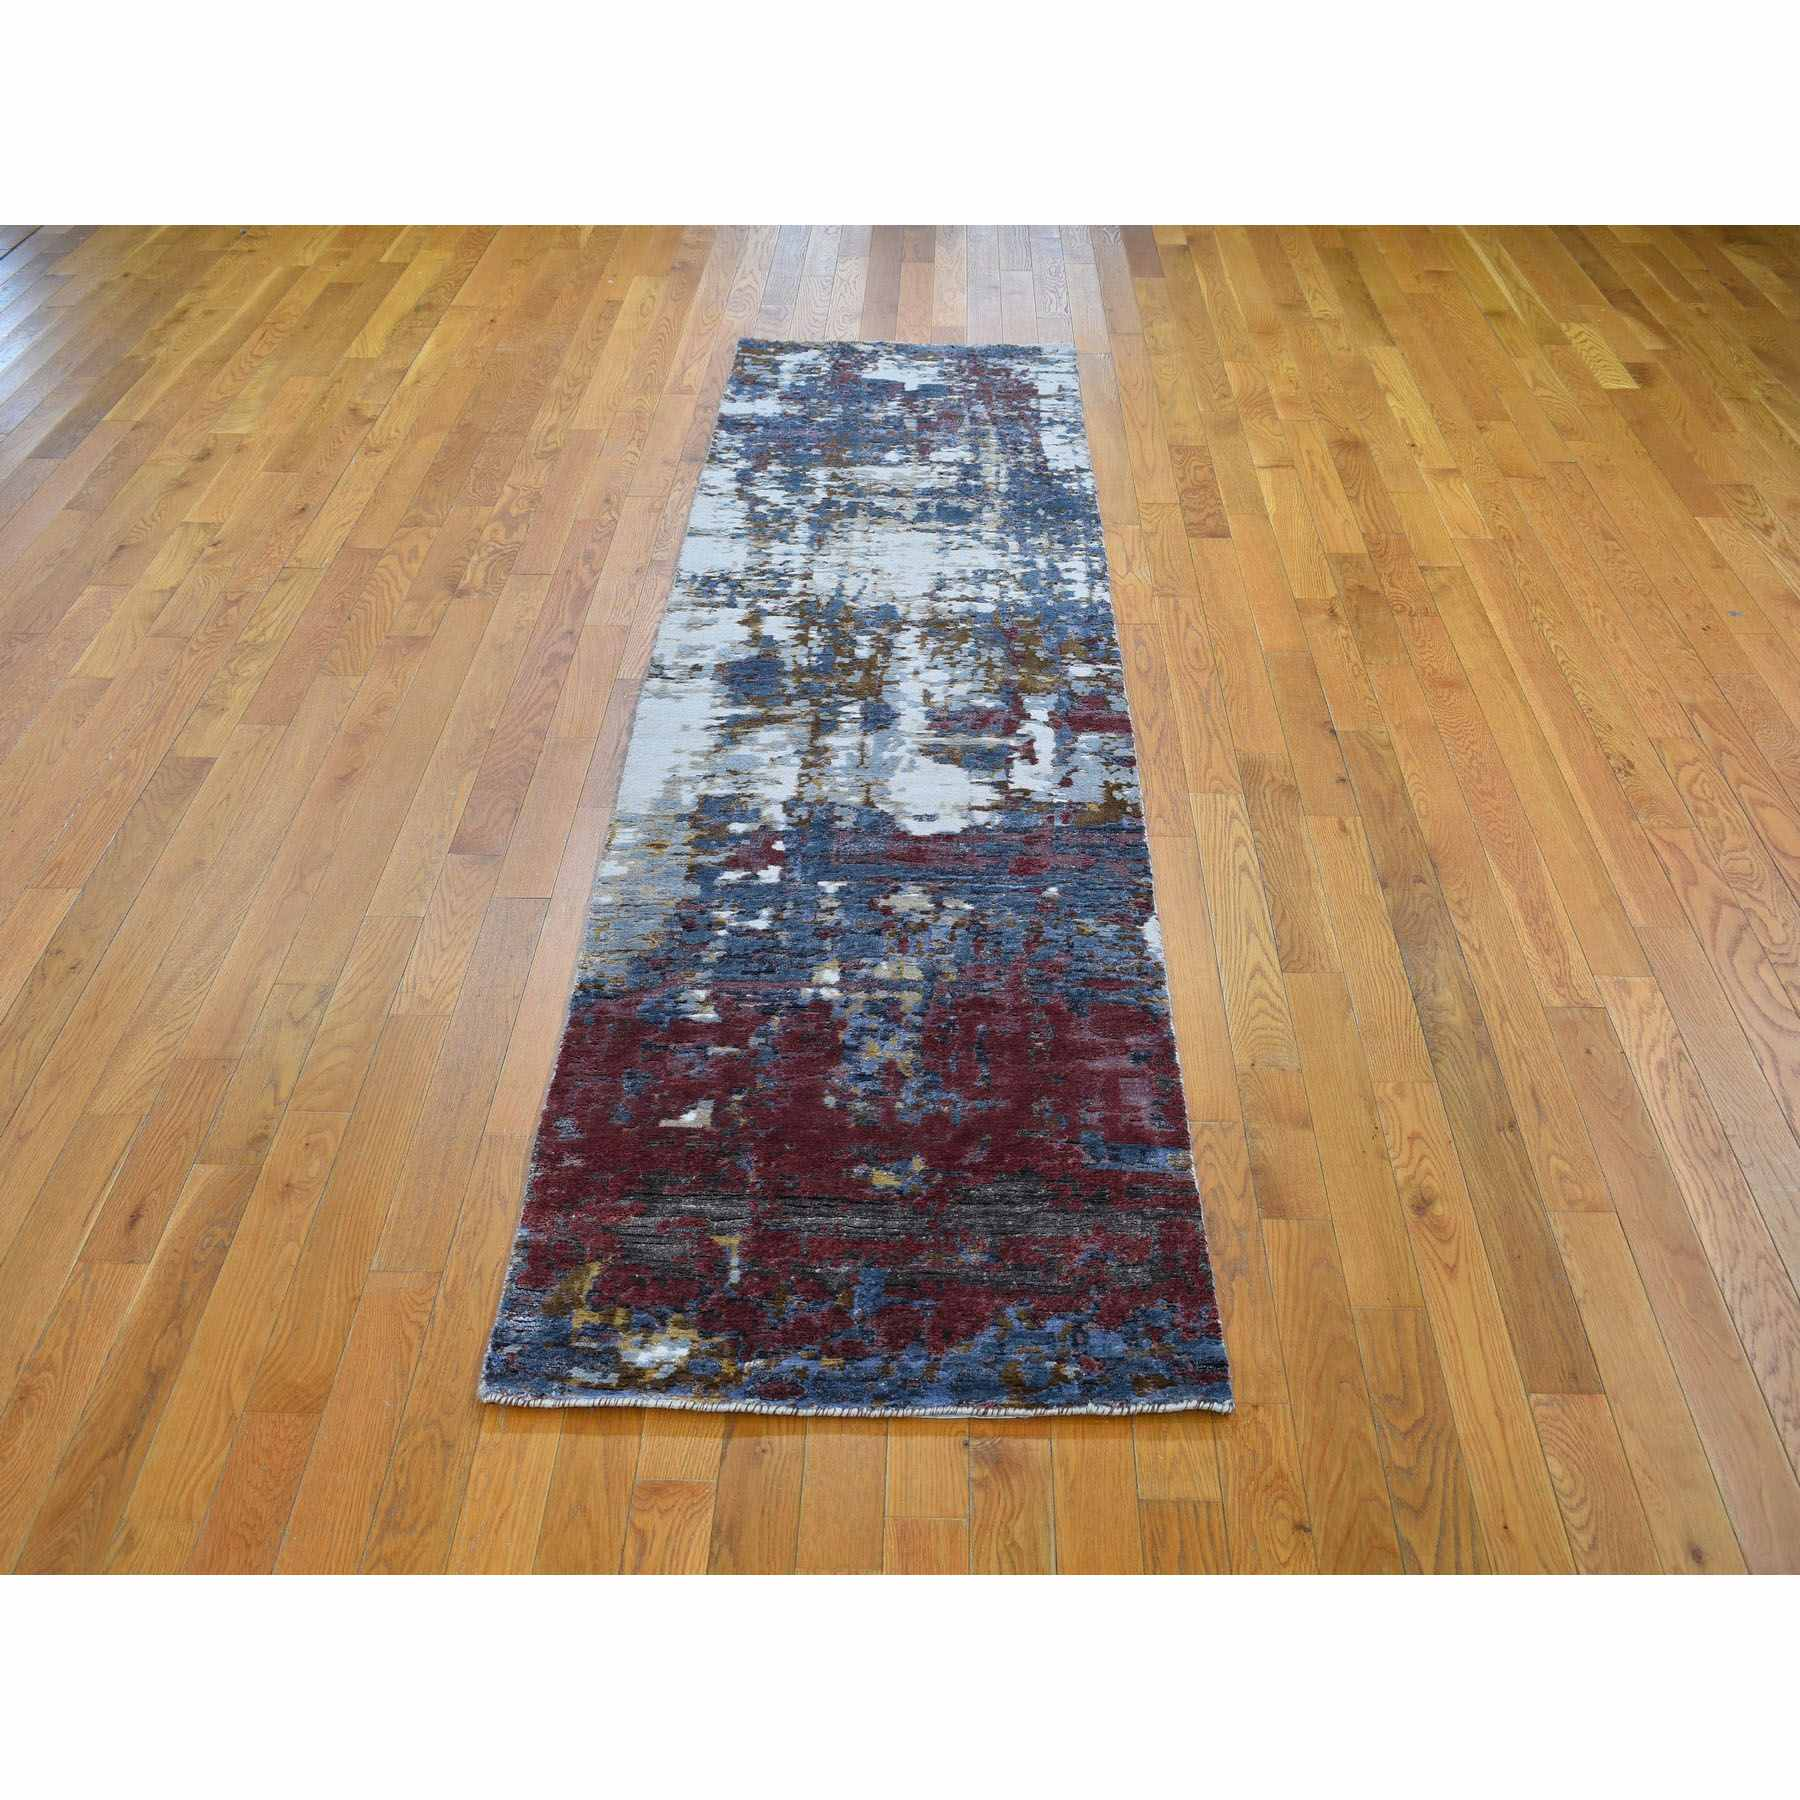 2-6 x10- Red Wool and Silk Hi-Low Pile Modern Abstract Design Runner Hand Knotted Oriental Rug